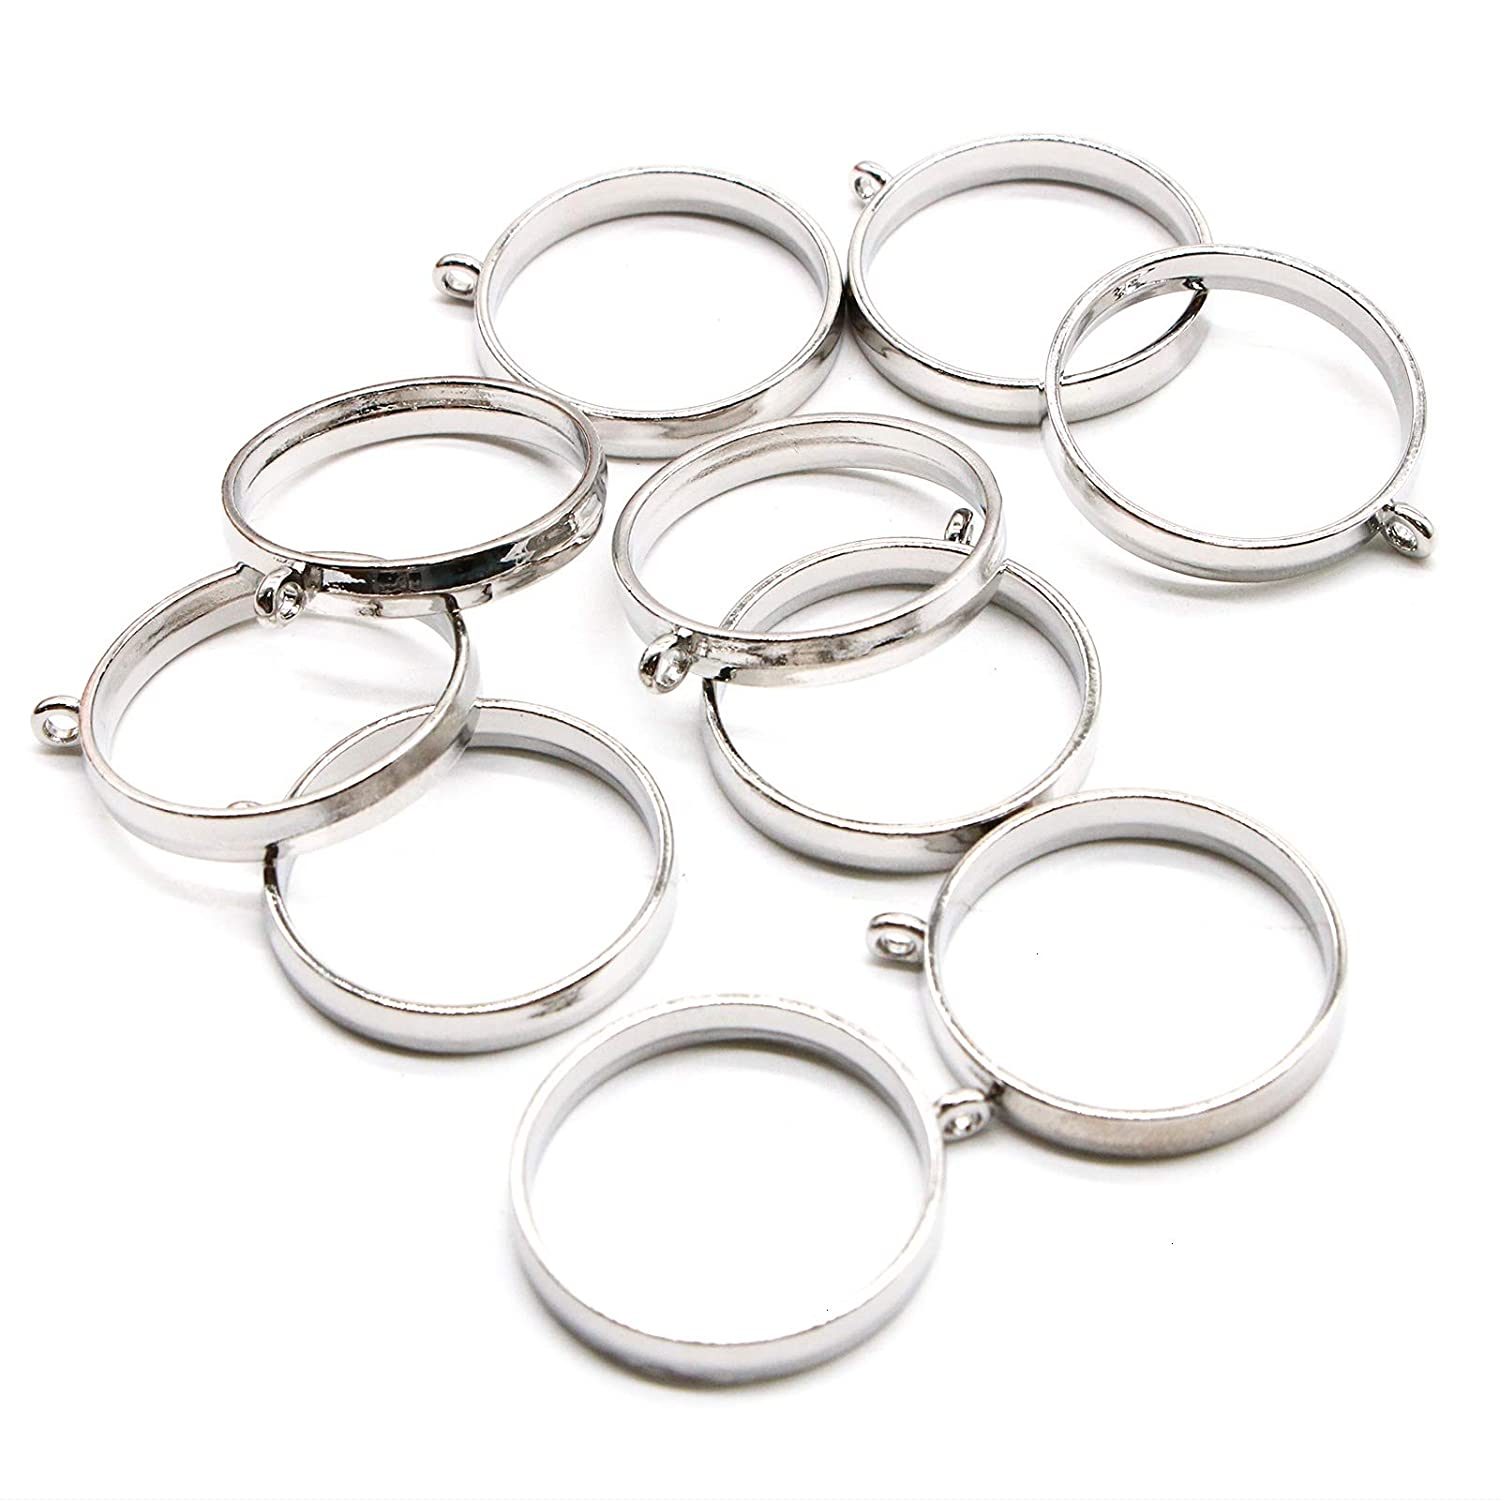 SS412 100pcs Sterling Silver Eye Pins 30mm Wire ~ 22GA or 0.6mm 1.2 inch For Jewelry Beading Craft Making